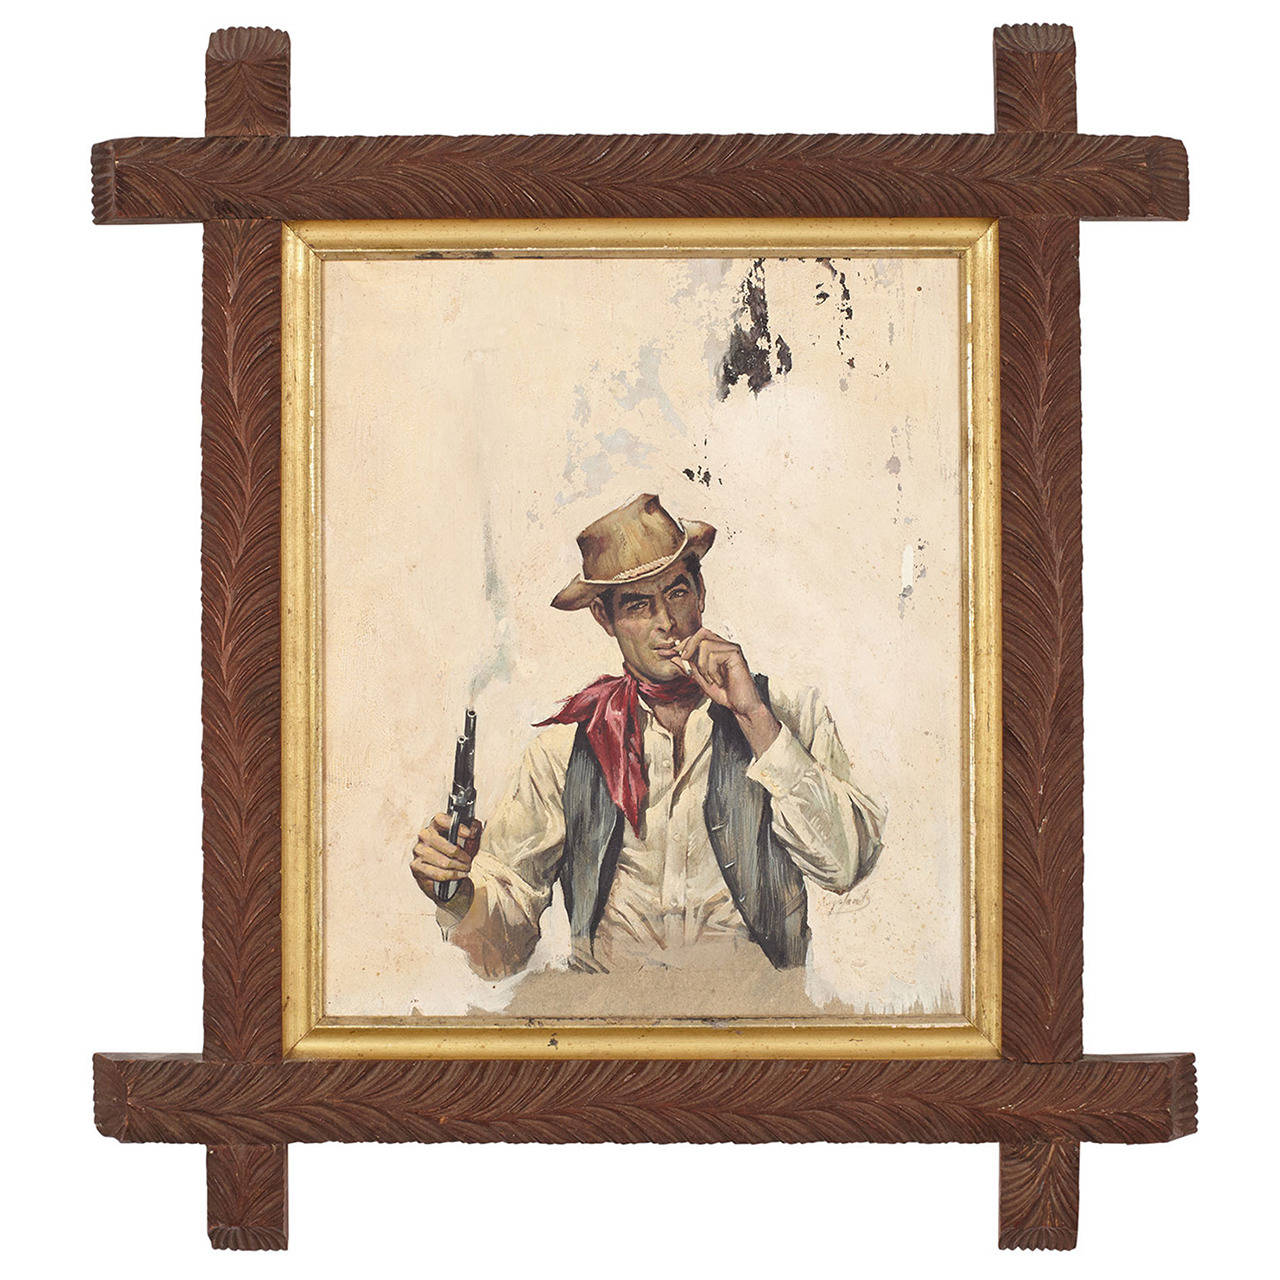 Book Cover Illustrations For Sale : Book cover illustration of cowboy in antique adirondack